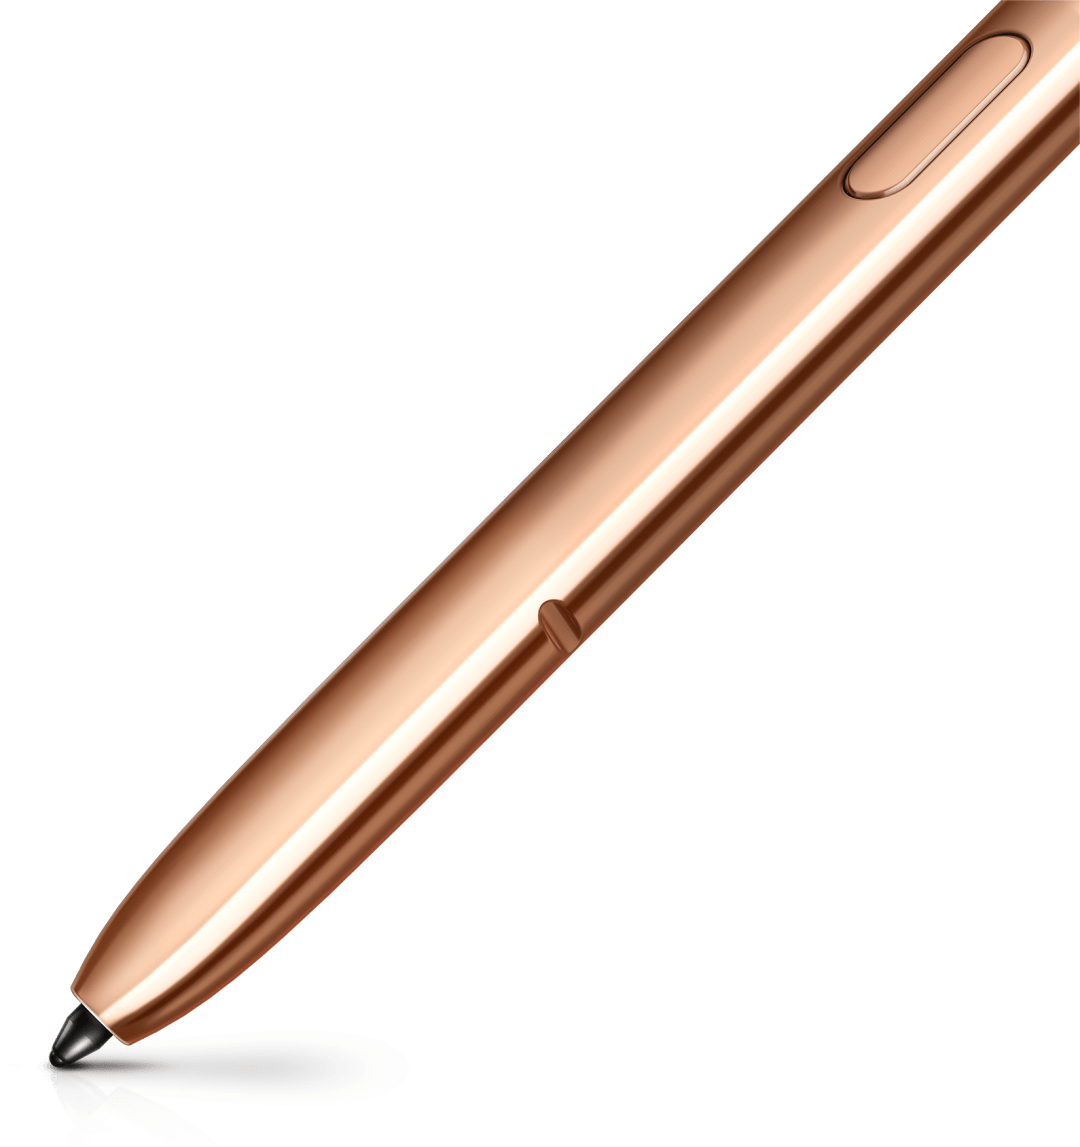 Extreme closeup of the lower portion of the bronze S Pen, showing its precise tip. There is a streak of bronze following the tip.